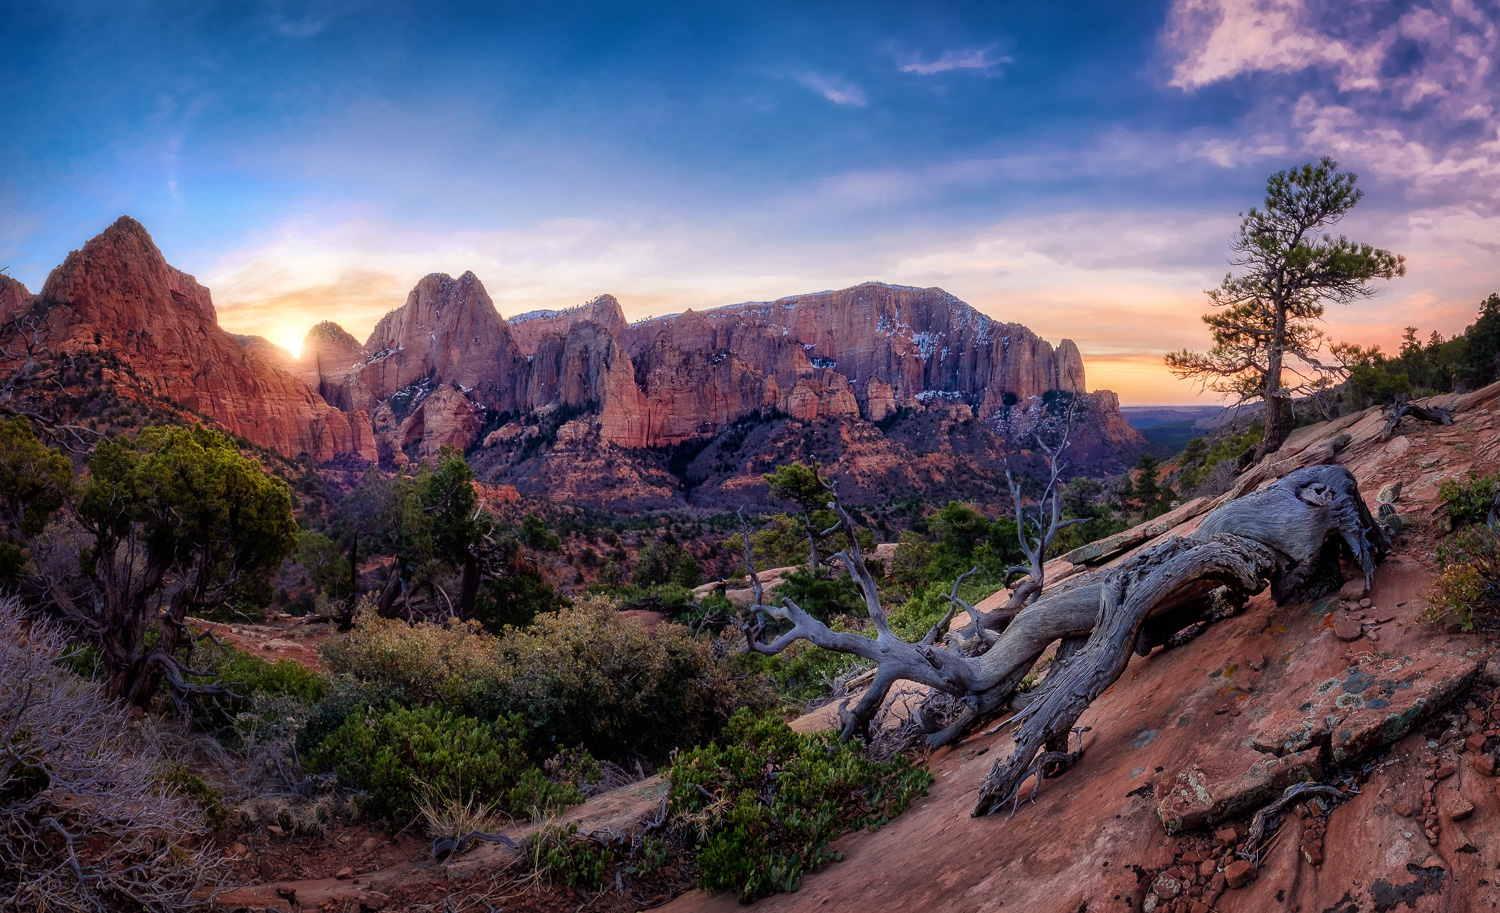 """""""Kolob Canyon Sunrise"""" - Captured on March 12, 2017, after doing some night photography and catching some sleep in the car while waiting for the sun to come up. Another of the amazing locations in Zion National Park."""